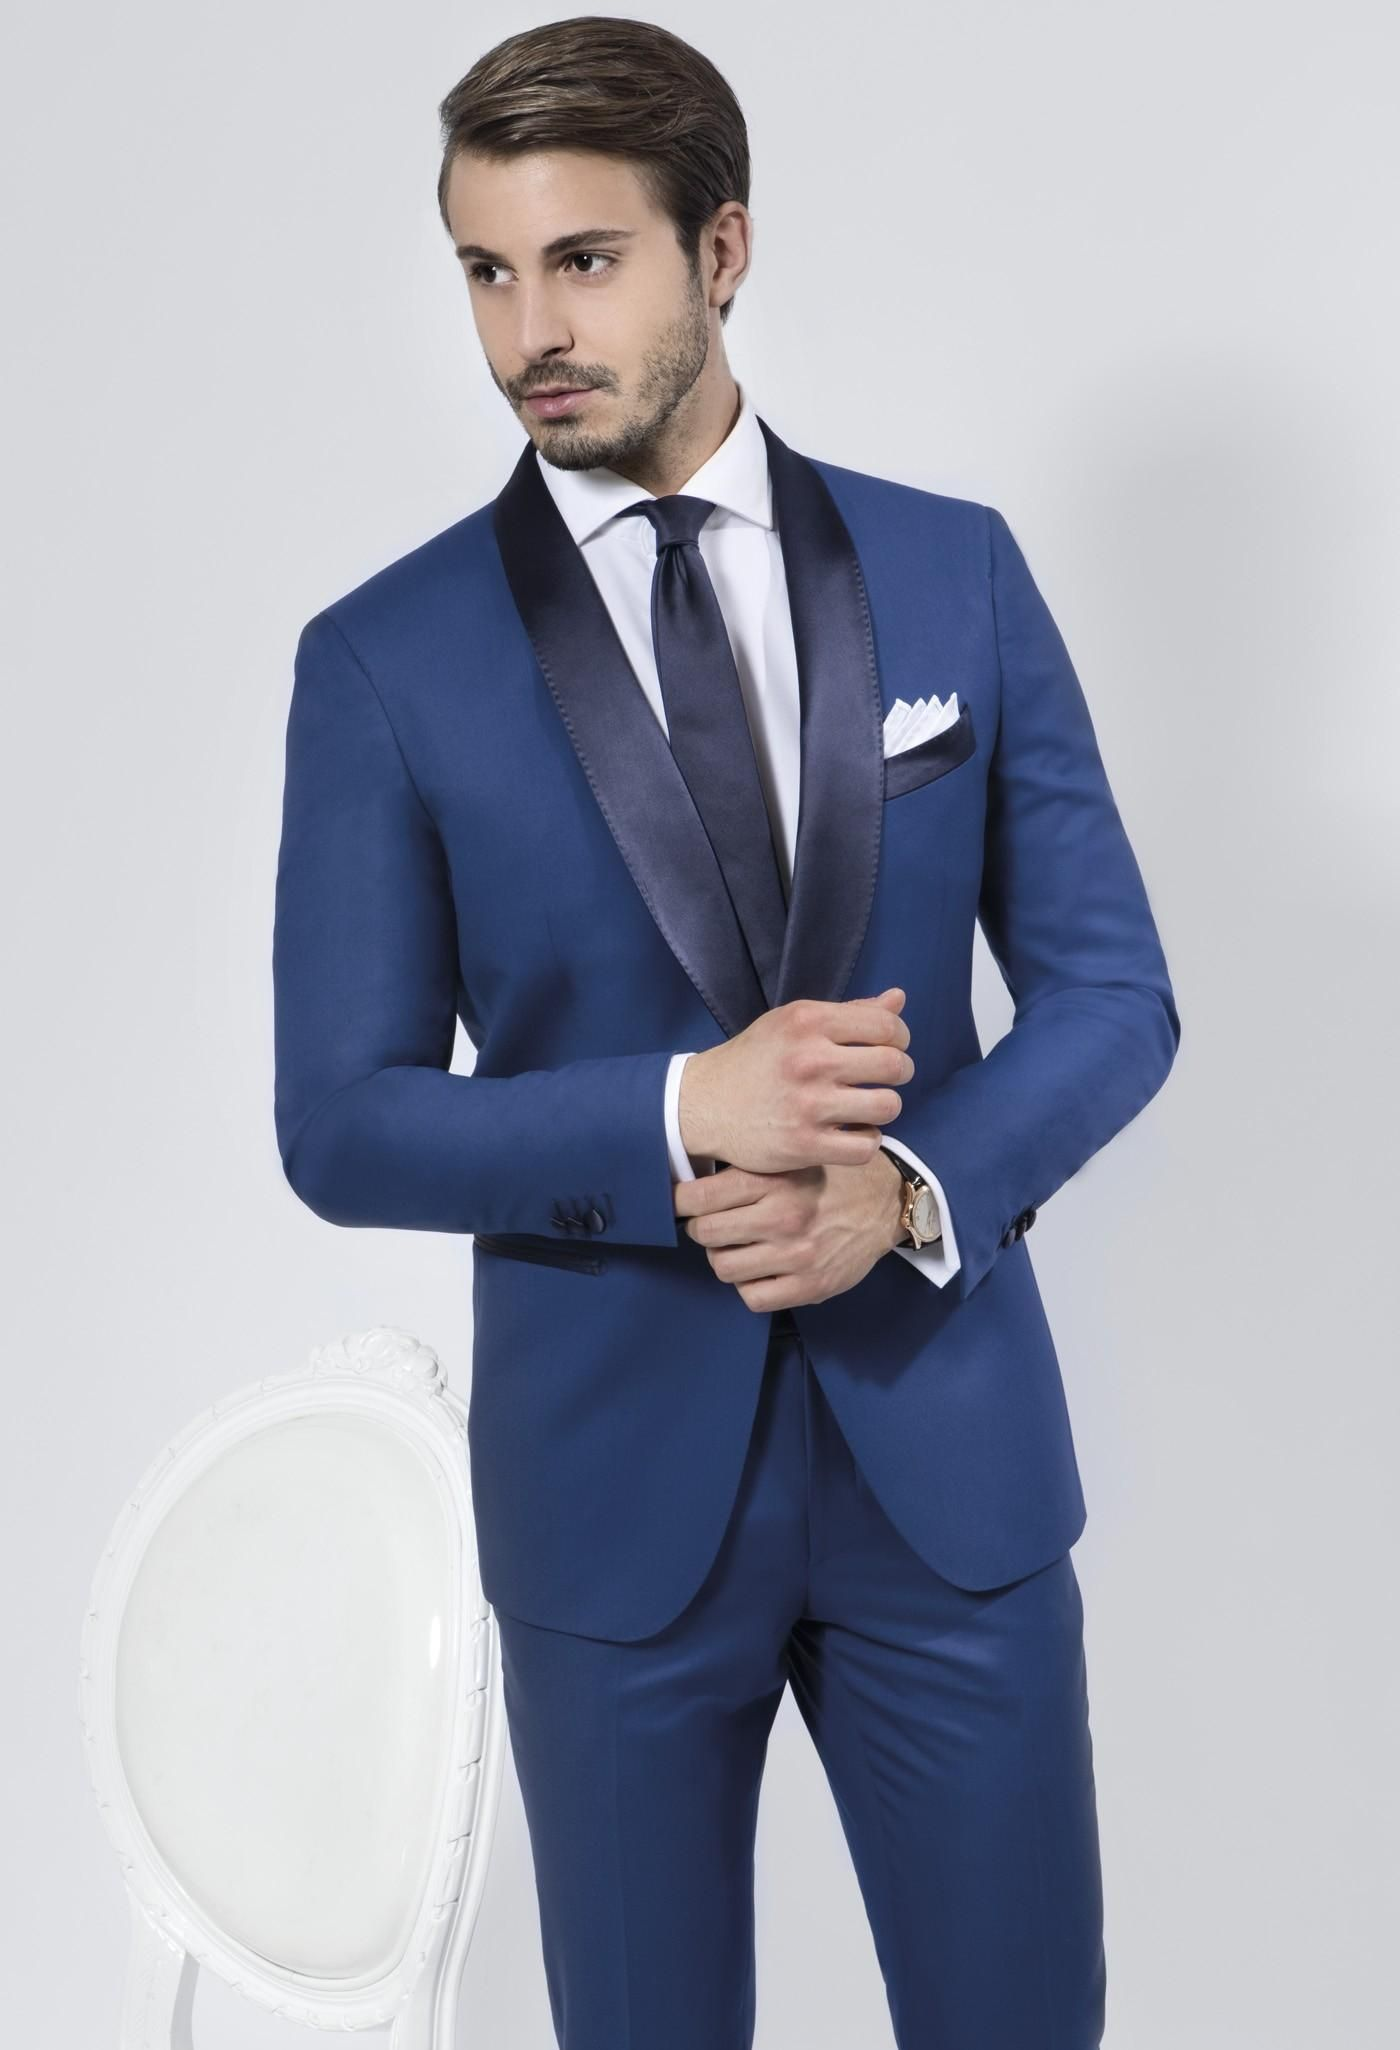 Find More Tuxedos Information about Mens Suits With Pants Tuxedo ...